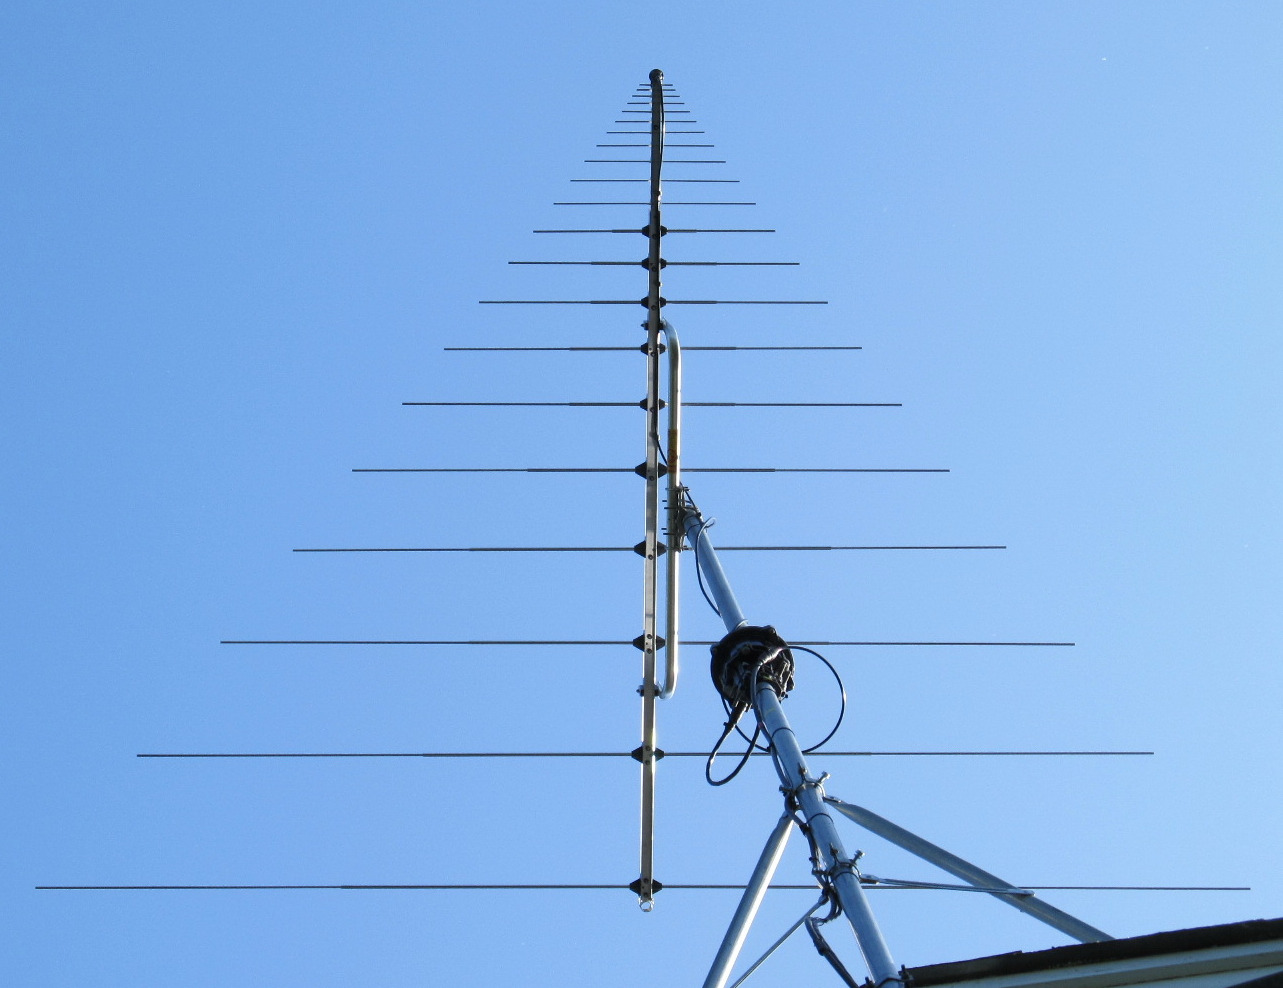 Homebrew RF Circuit Design Ideas together with Homemade Carolina Windom Antenna furthermore Homemade Tv Antenna  lifier furthermore 21 Things To Do Build An Antenna additionally Frank radio antenna magloop. on fm radio antenna homemade